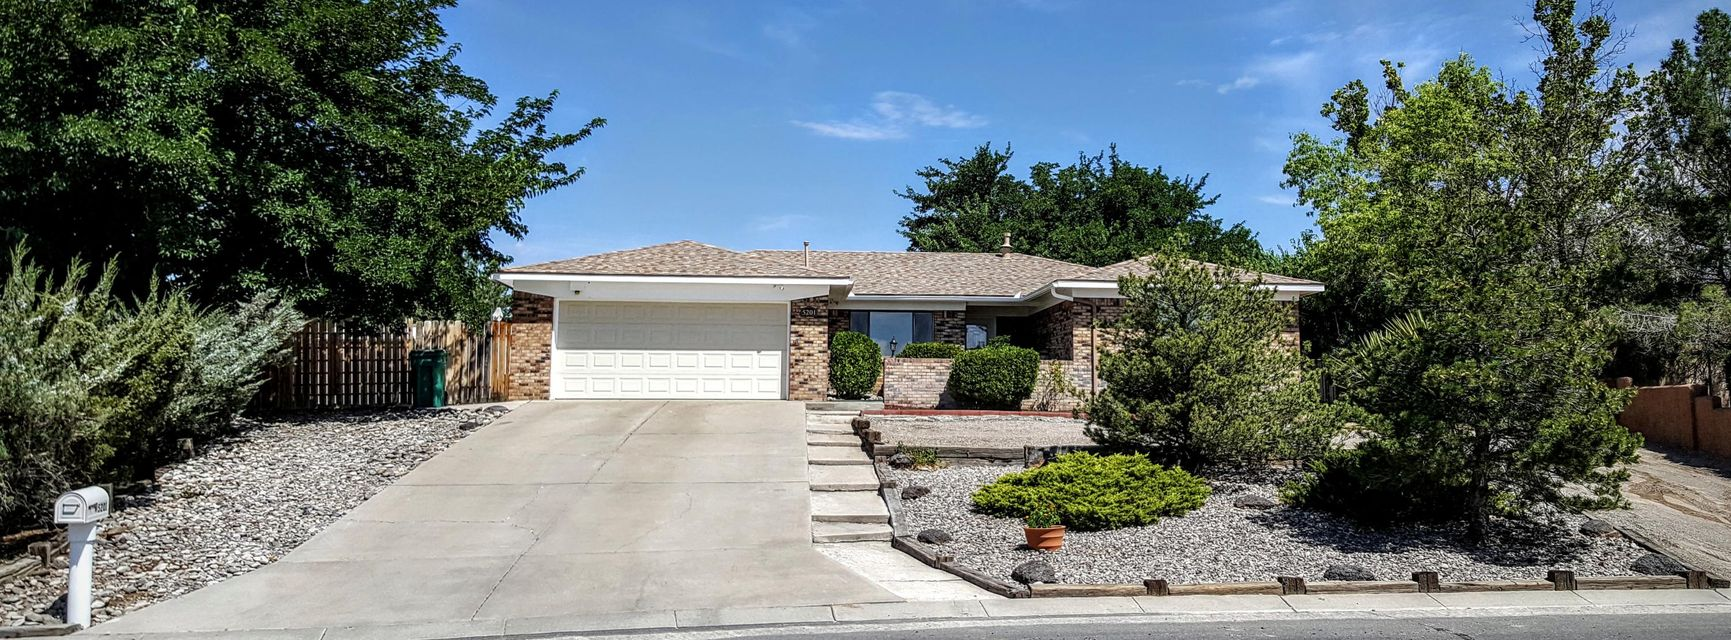 5201 Russell Drive NW, Albuquerque, NM 87114